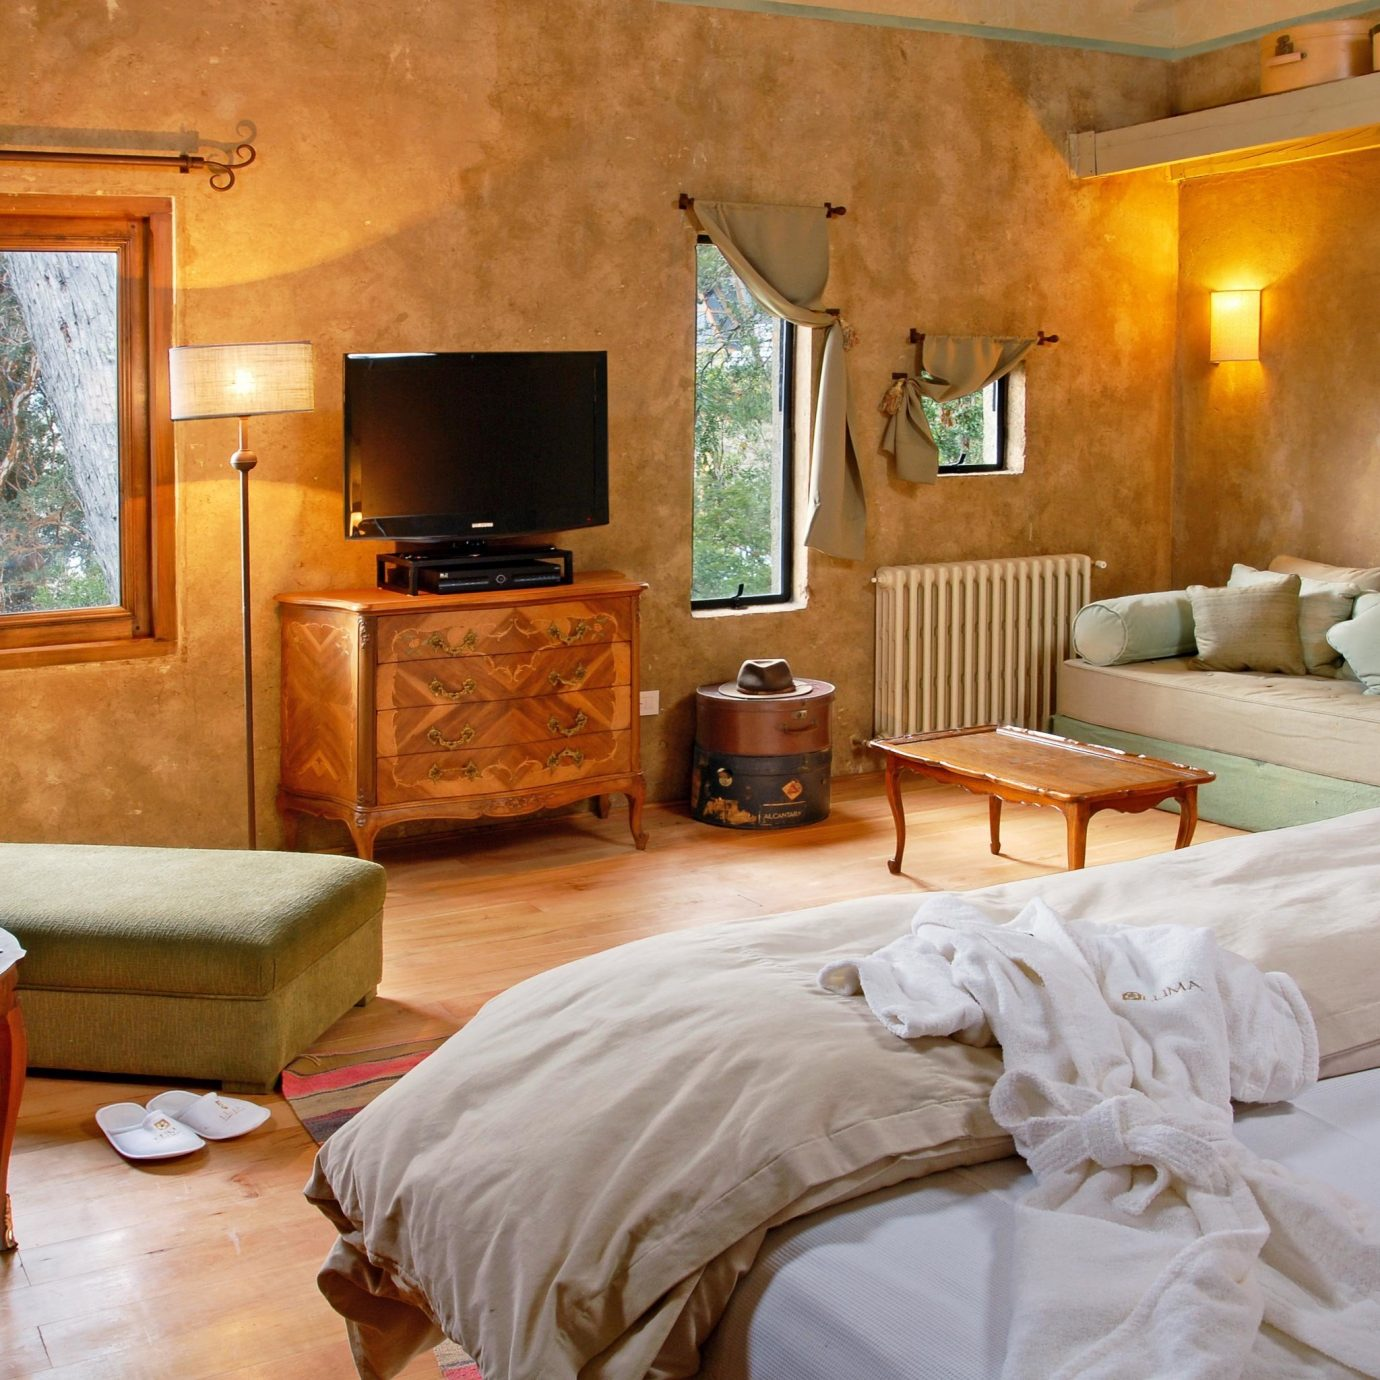 Bedroom Country Rustic Scenic views property cottage Suite farmhouse Villa